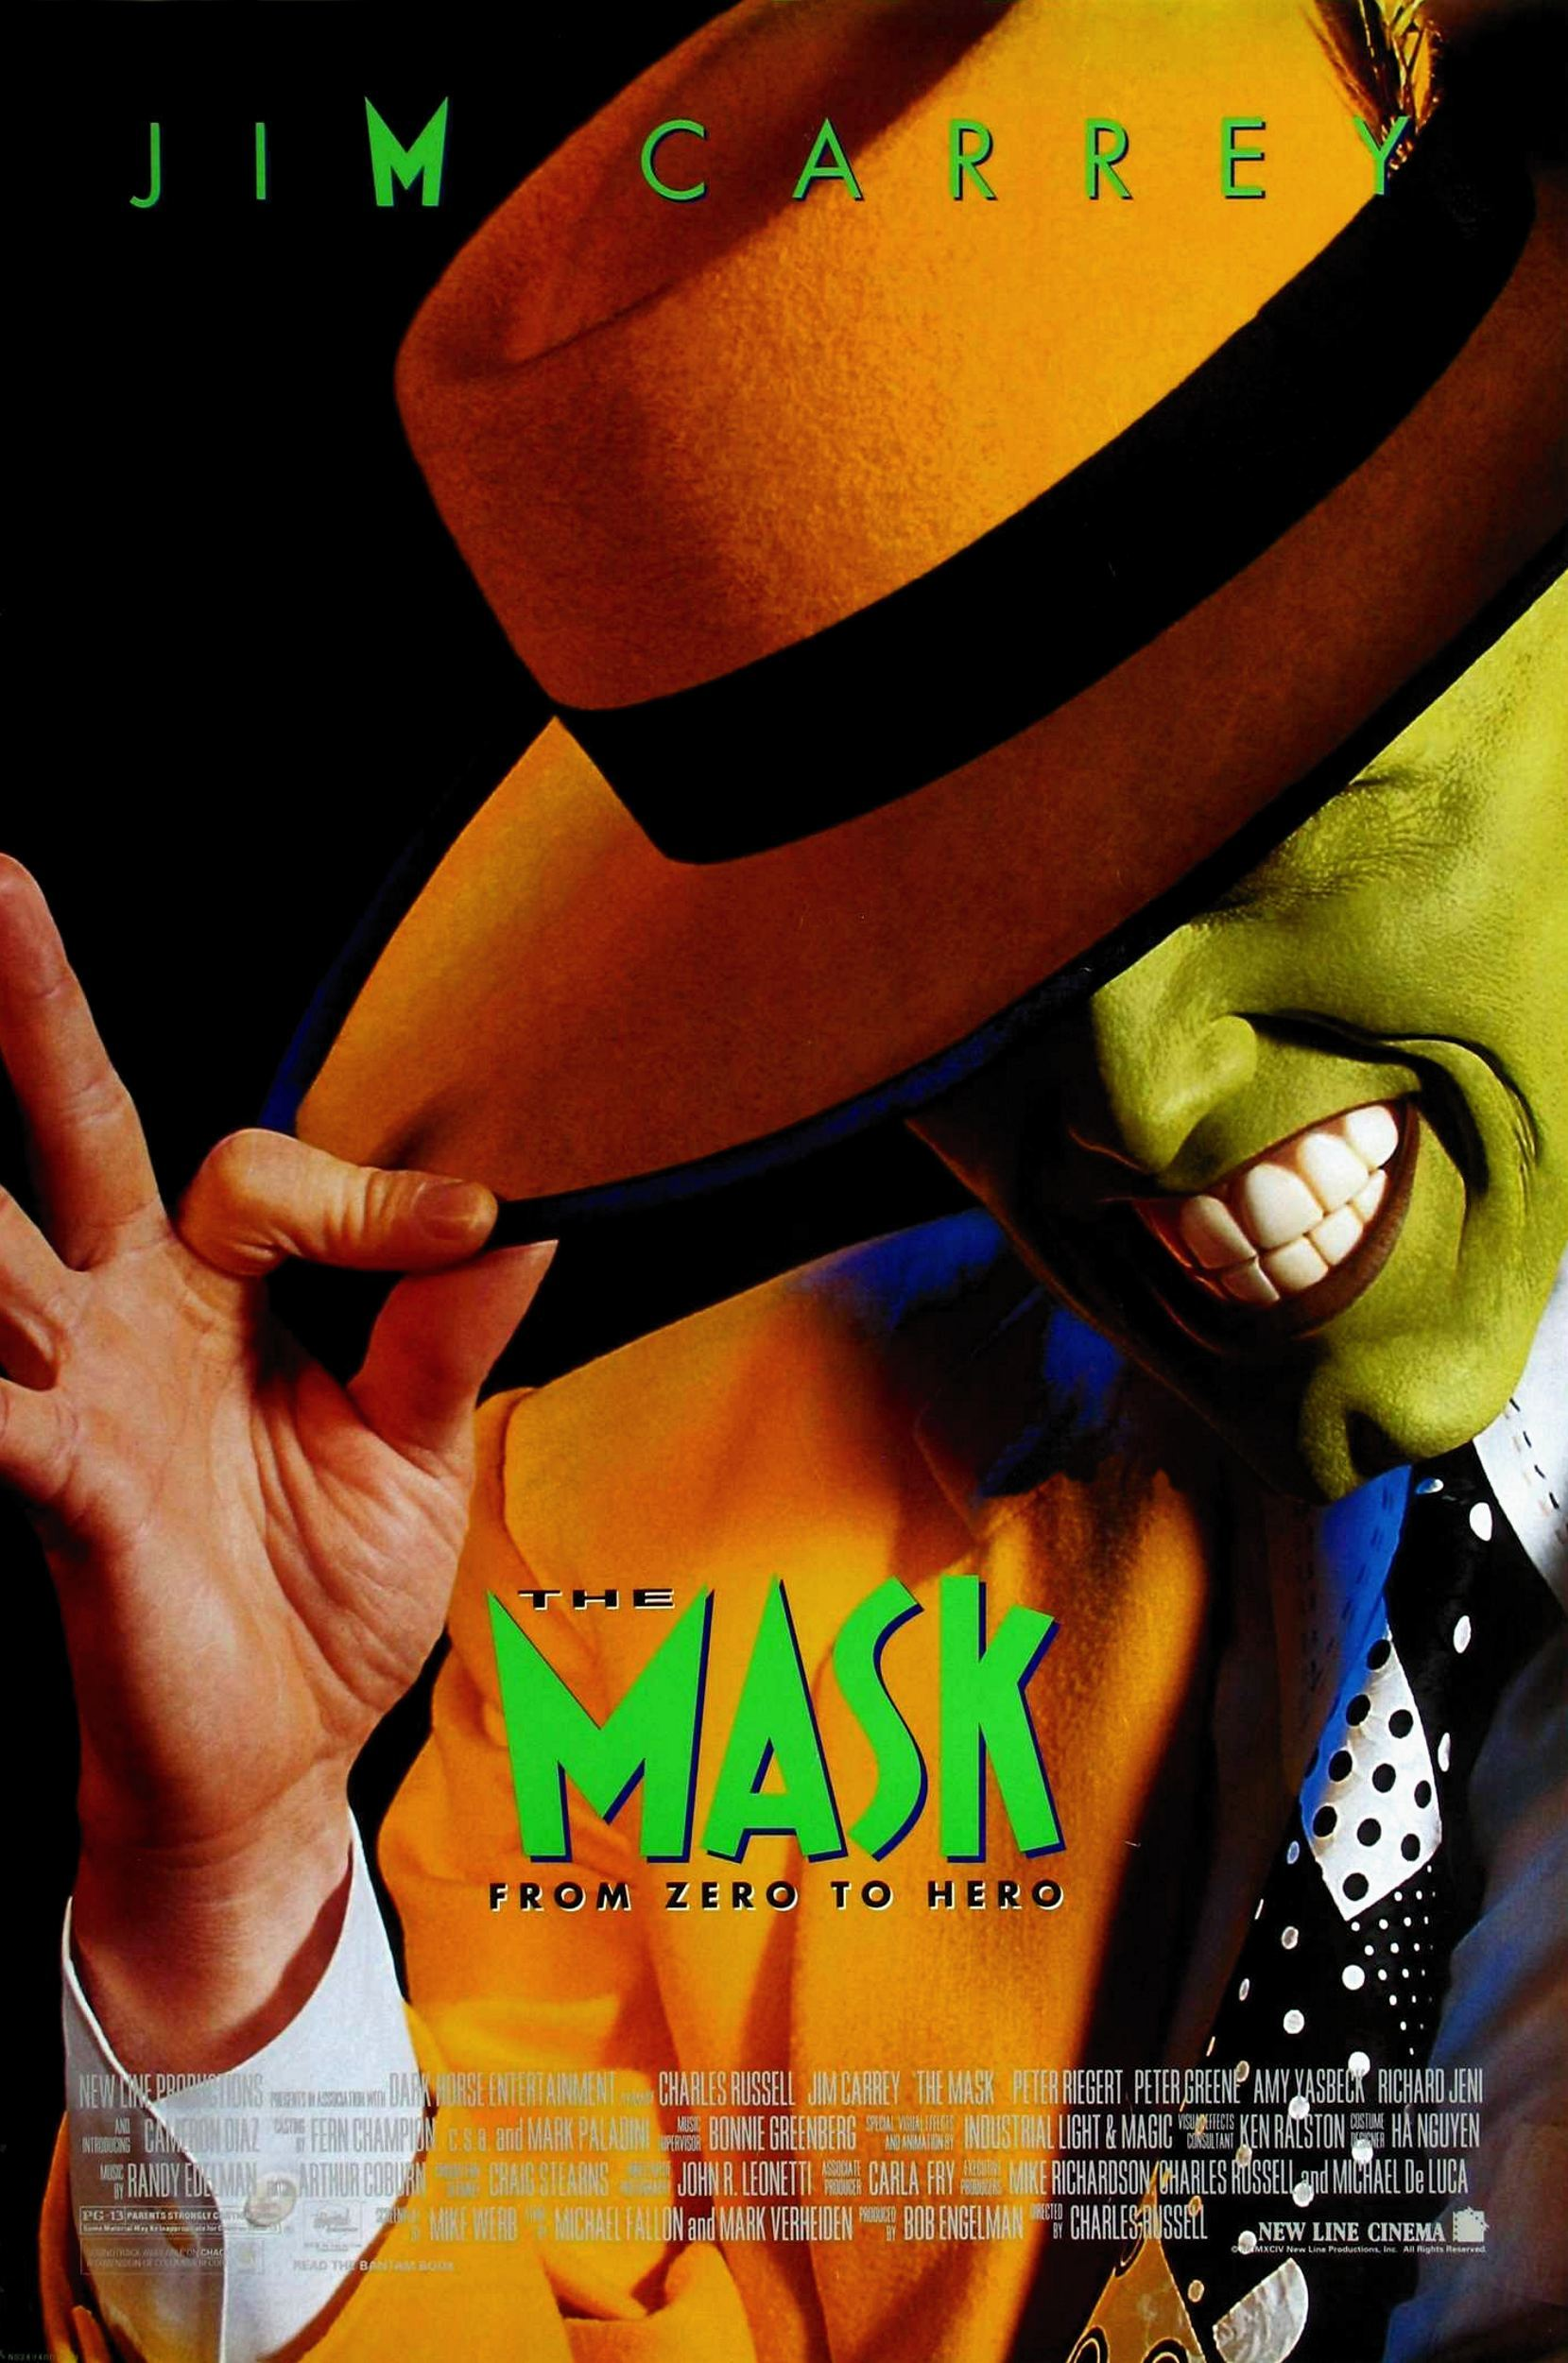 The_Mask_poster